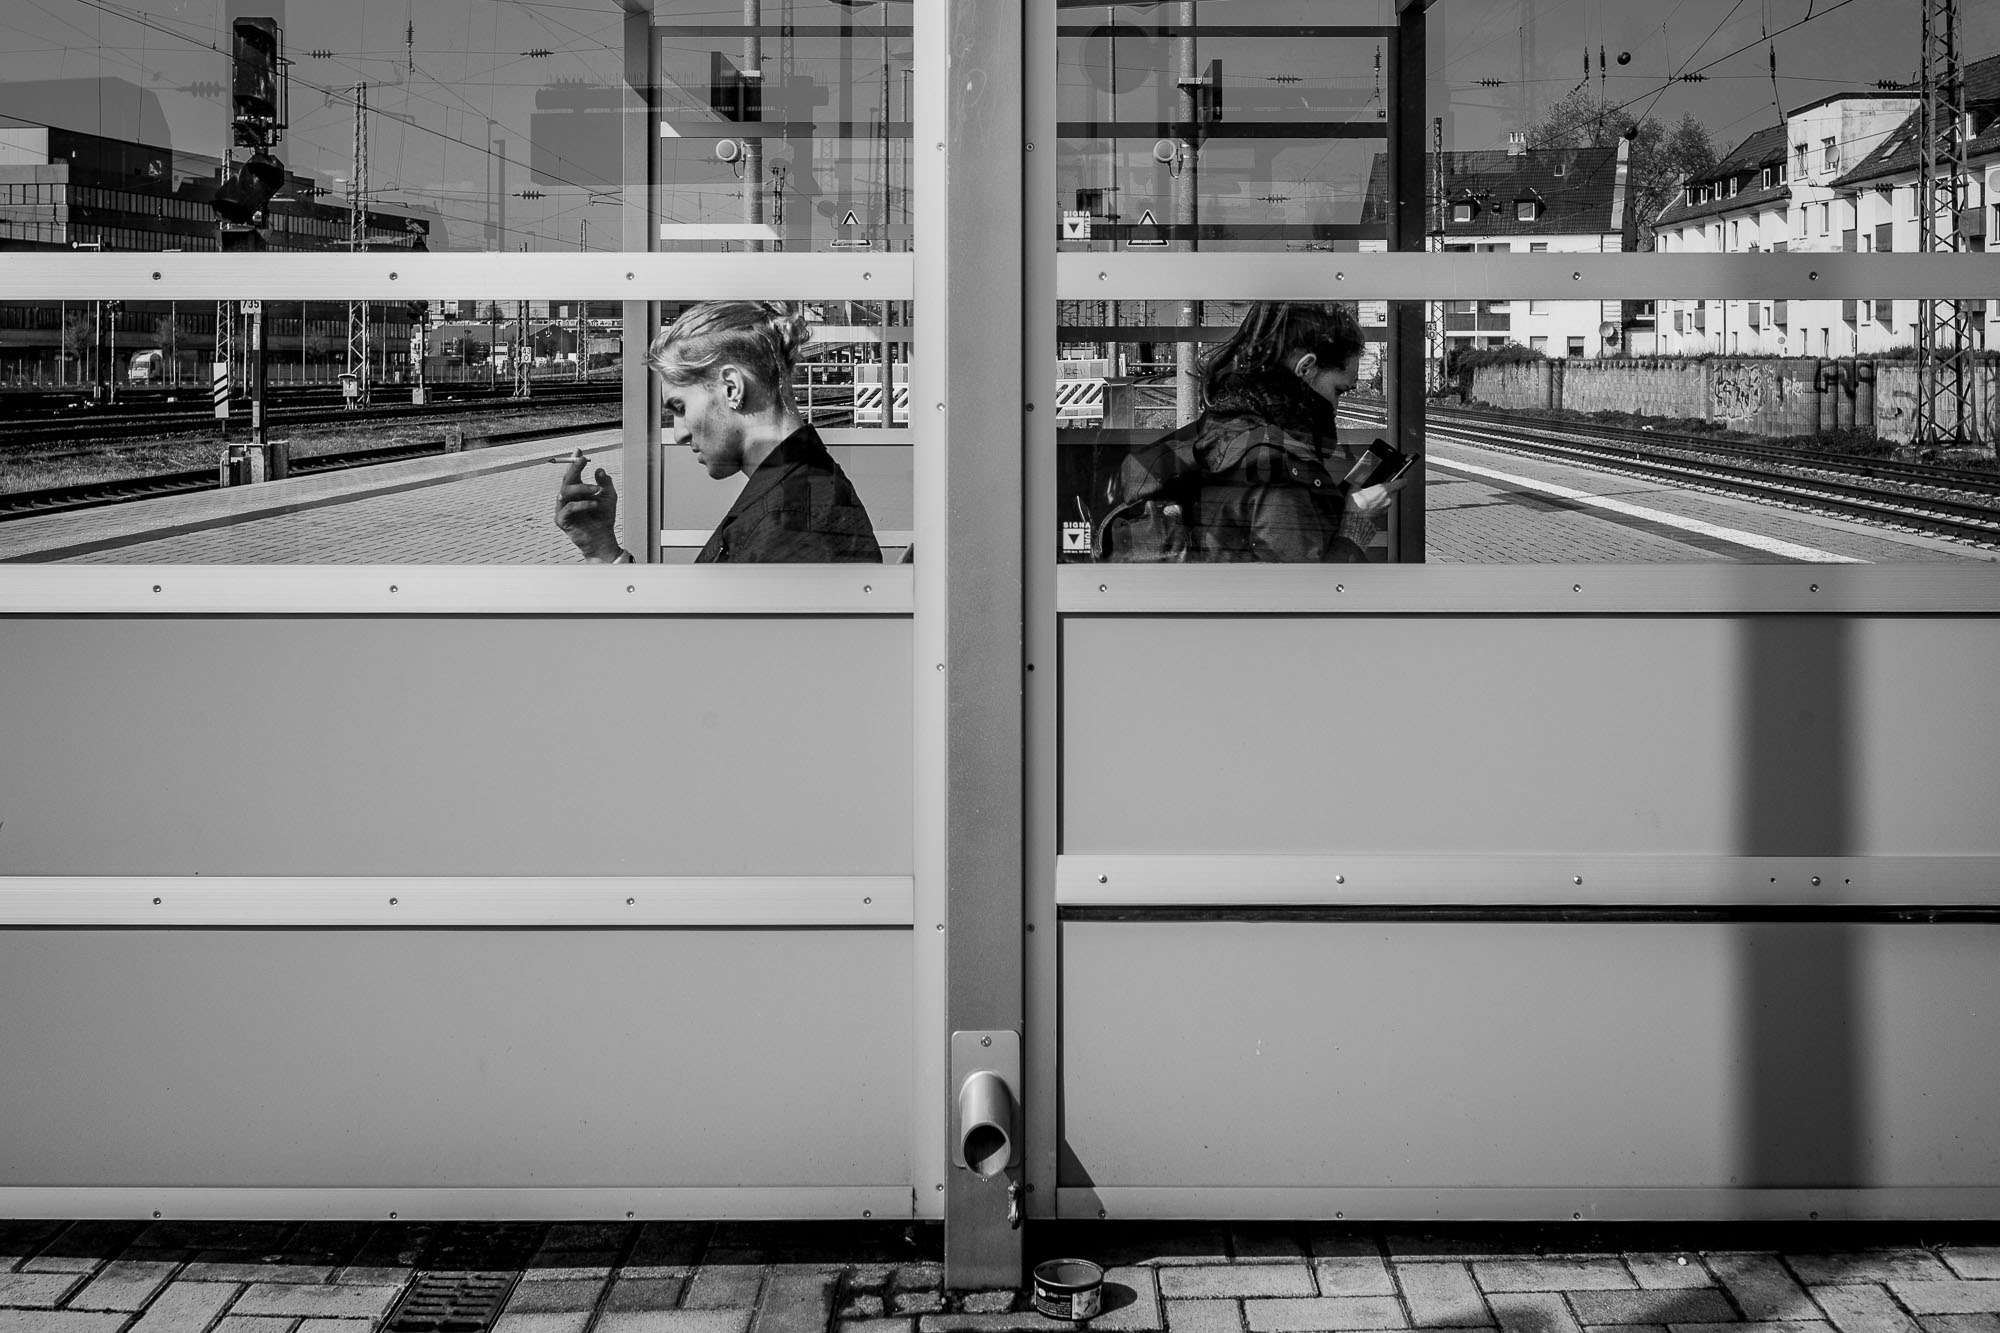 Passengeres waiting for the train